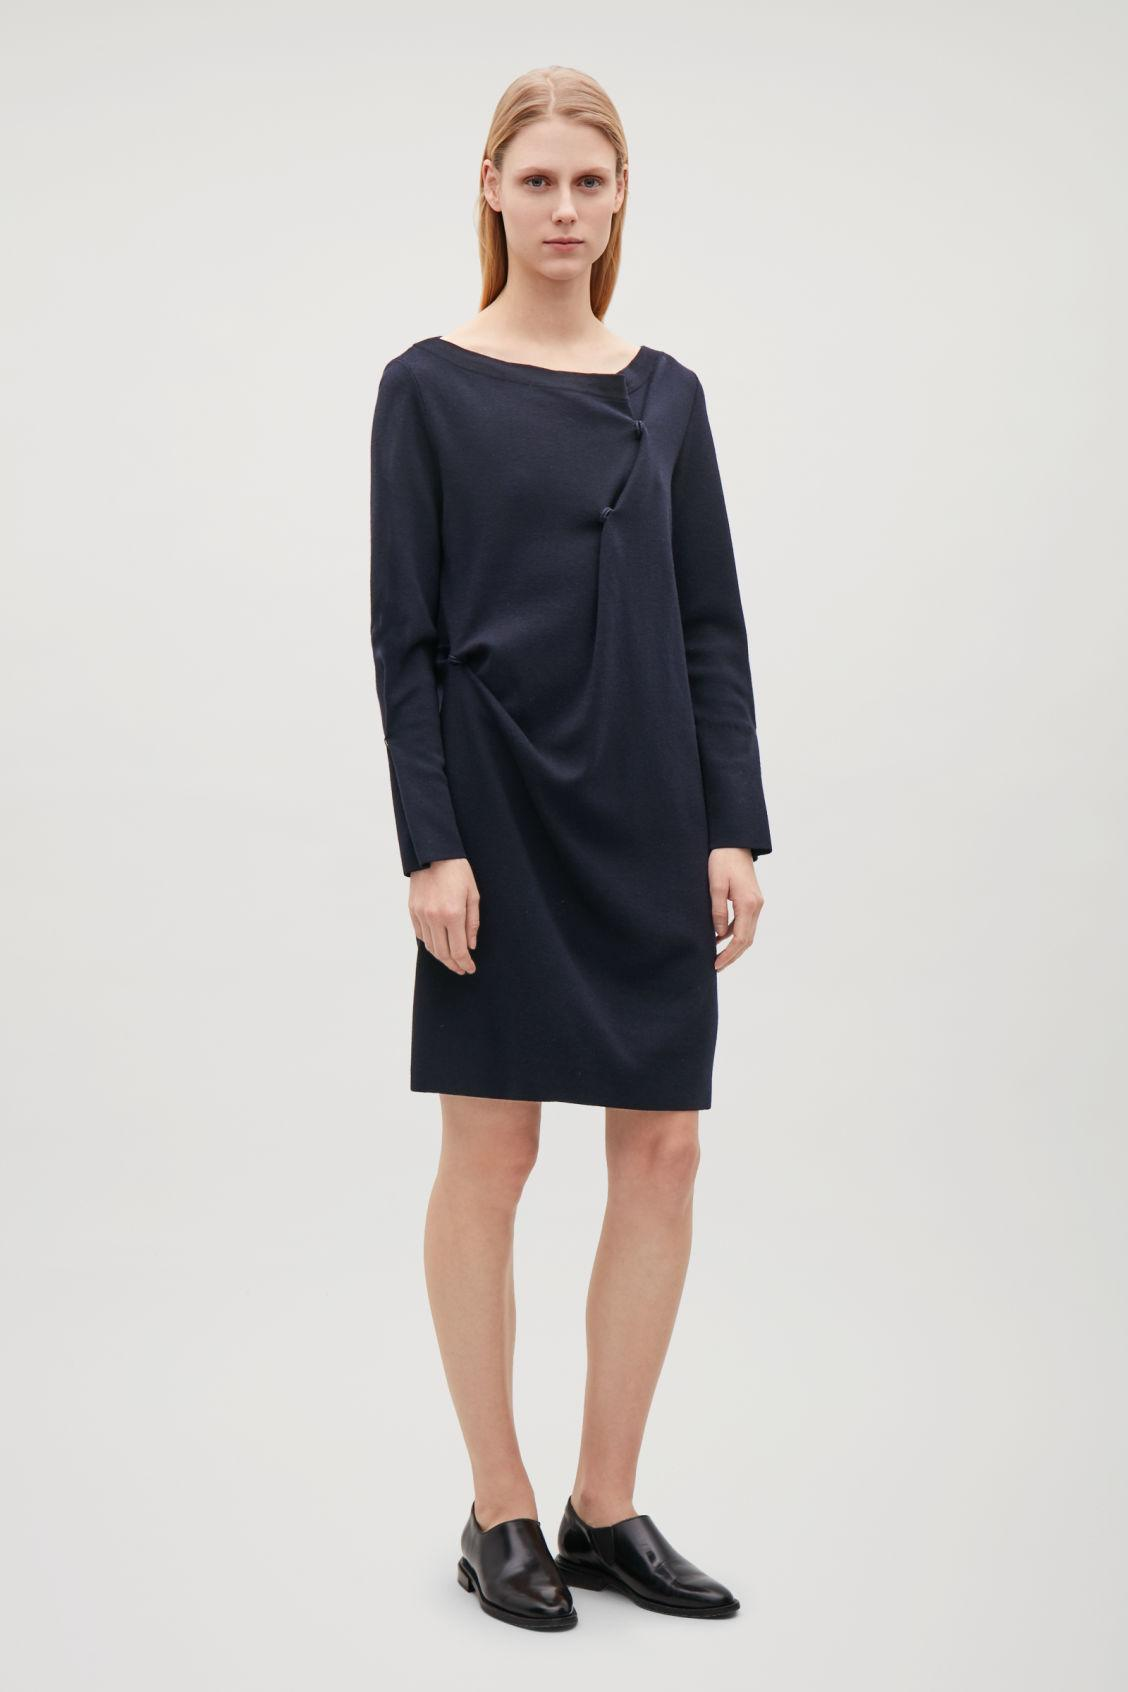 b407f130bf352 Cos Wool-Knit Dress With Drape Detail In Blue | ModeSens